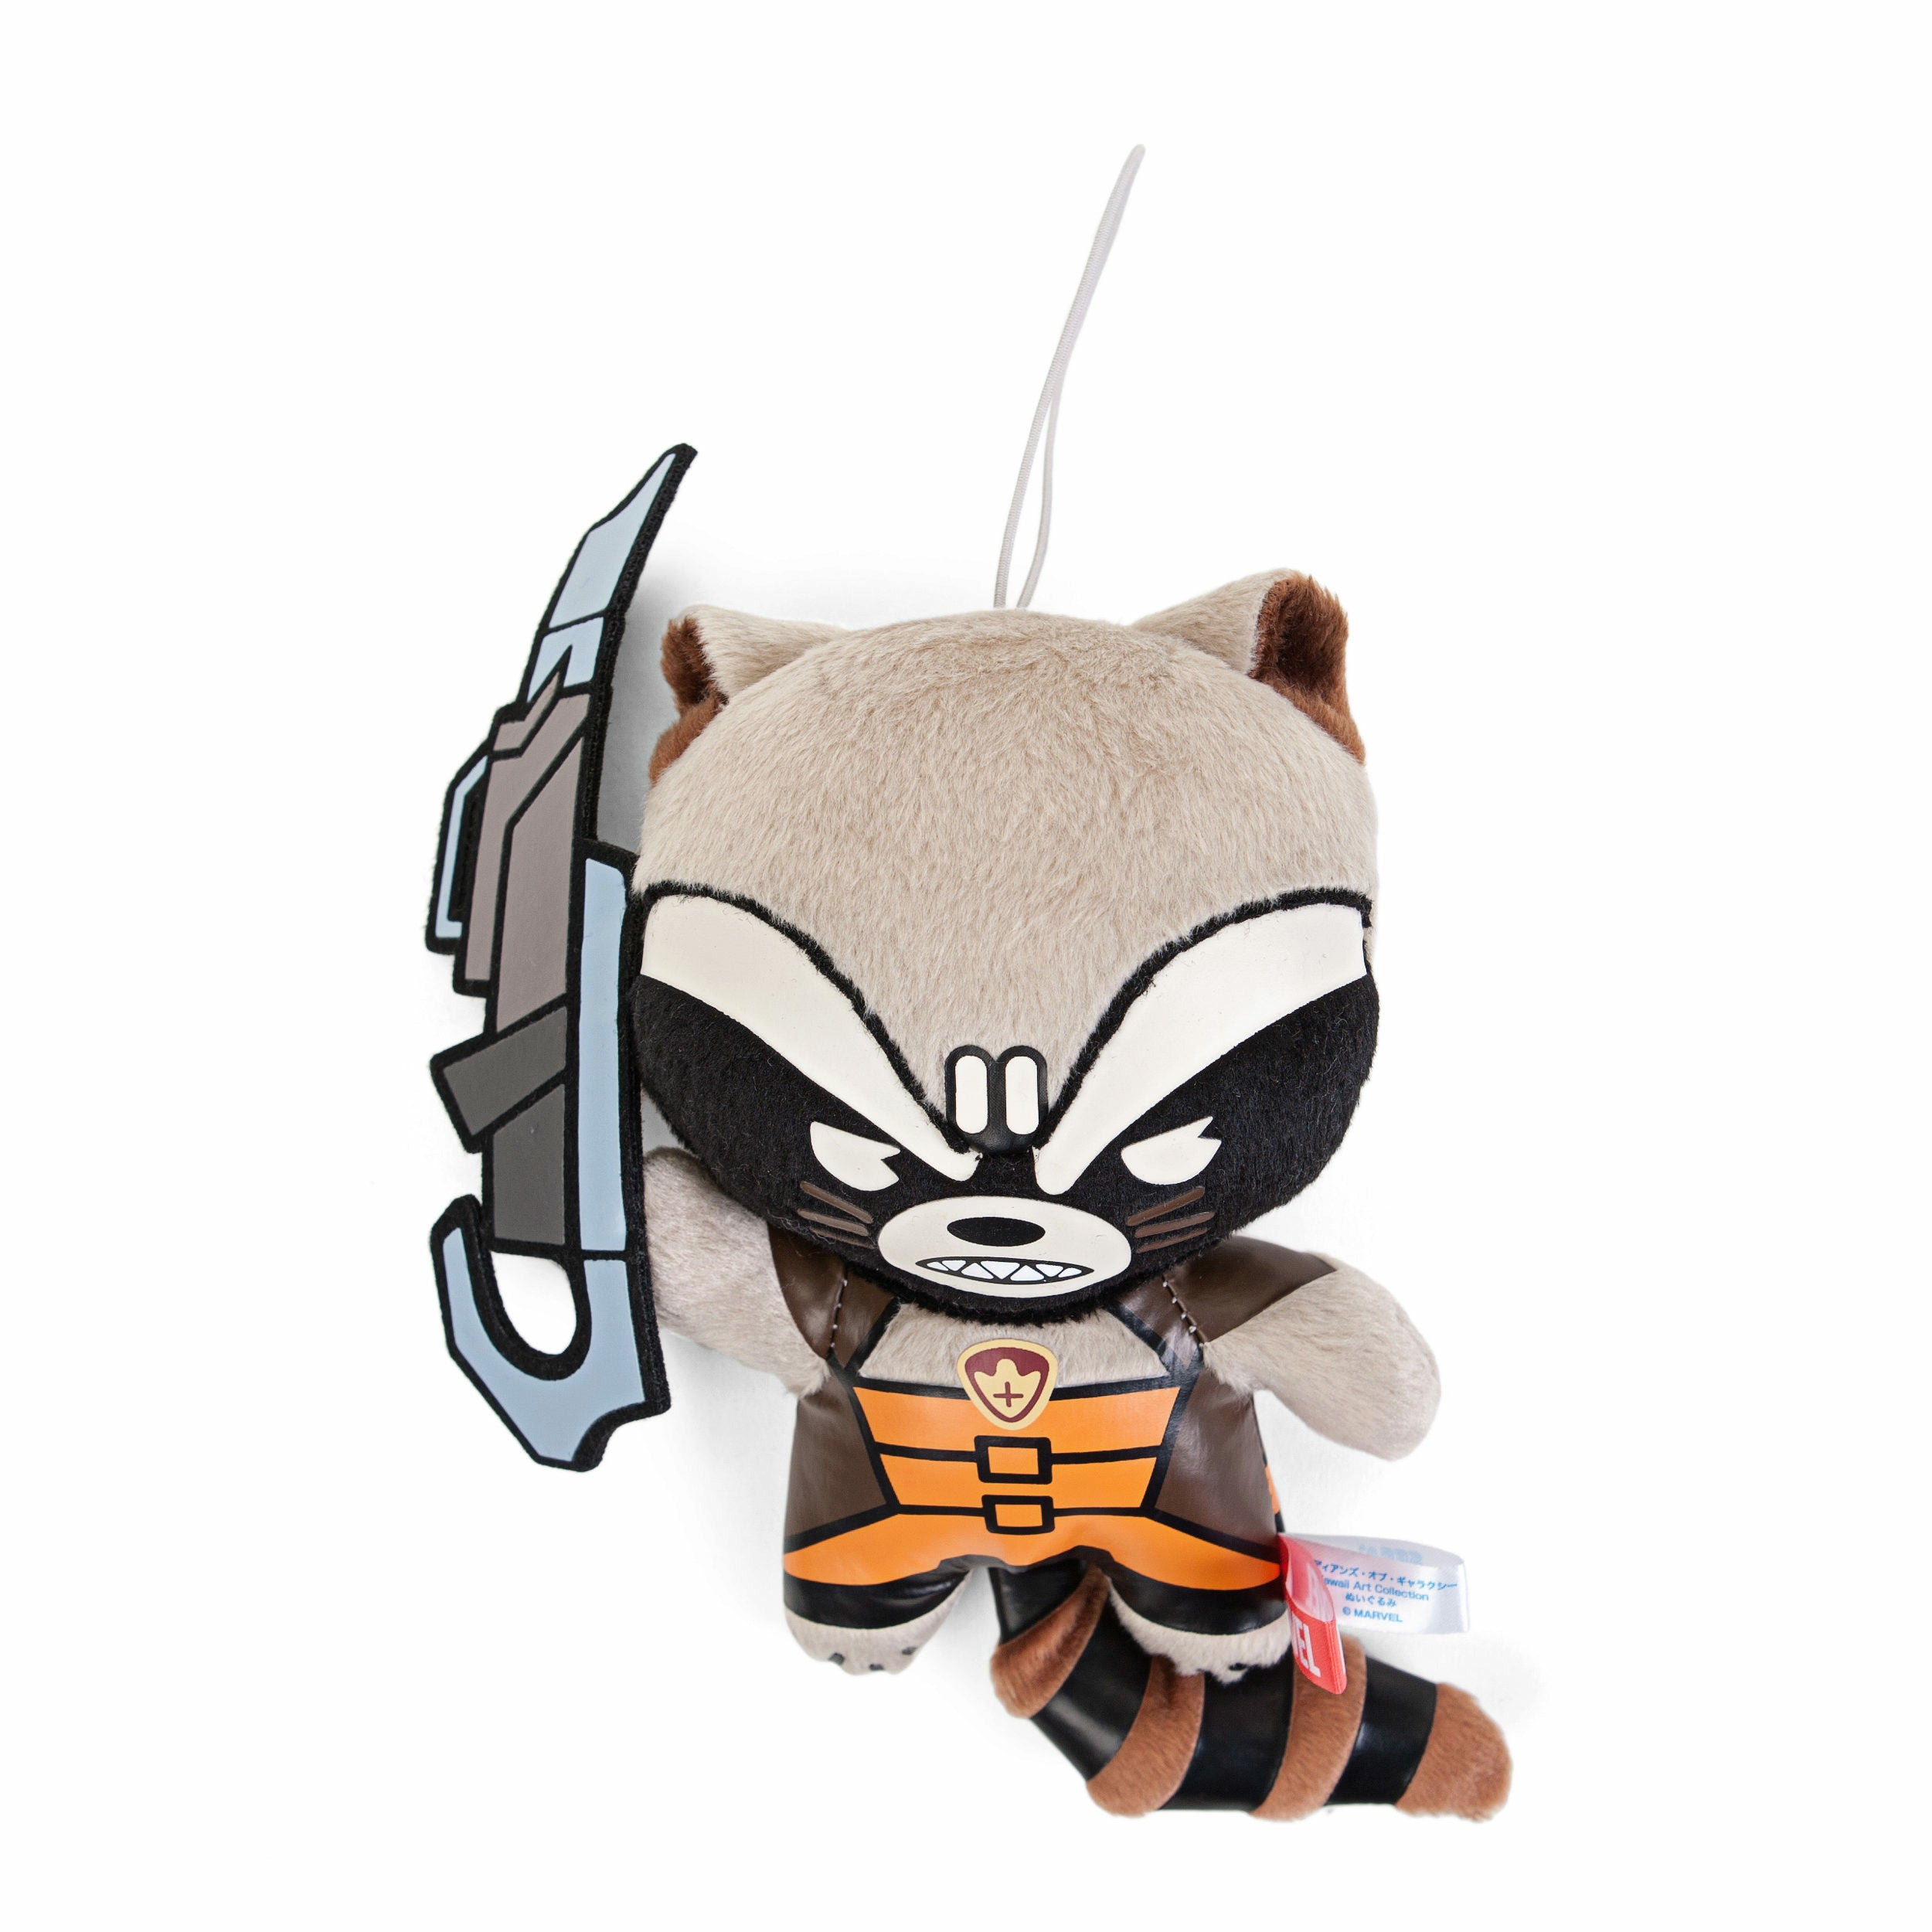 Marvel Guardians of the Galaxy Rocket 6 inch Plush Toy